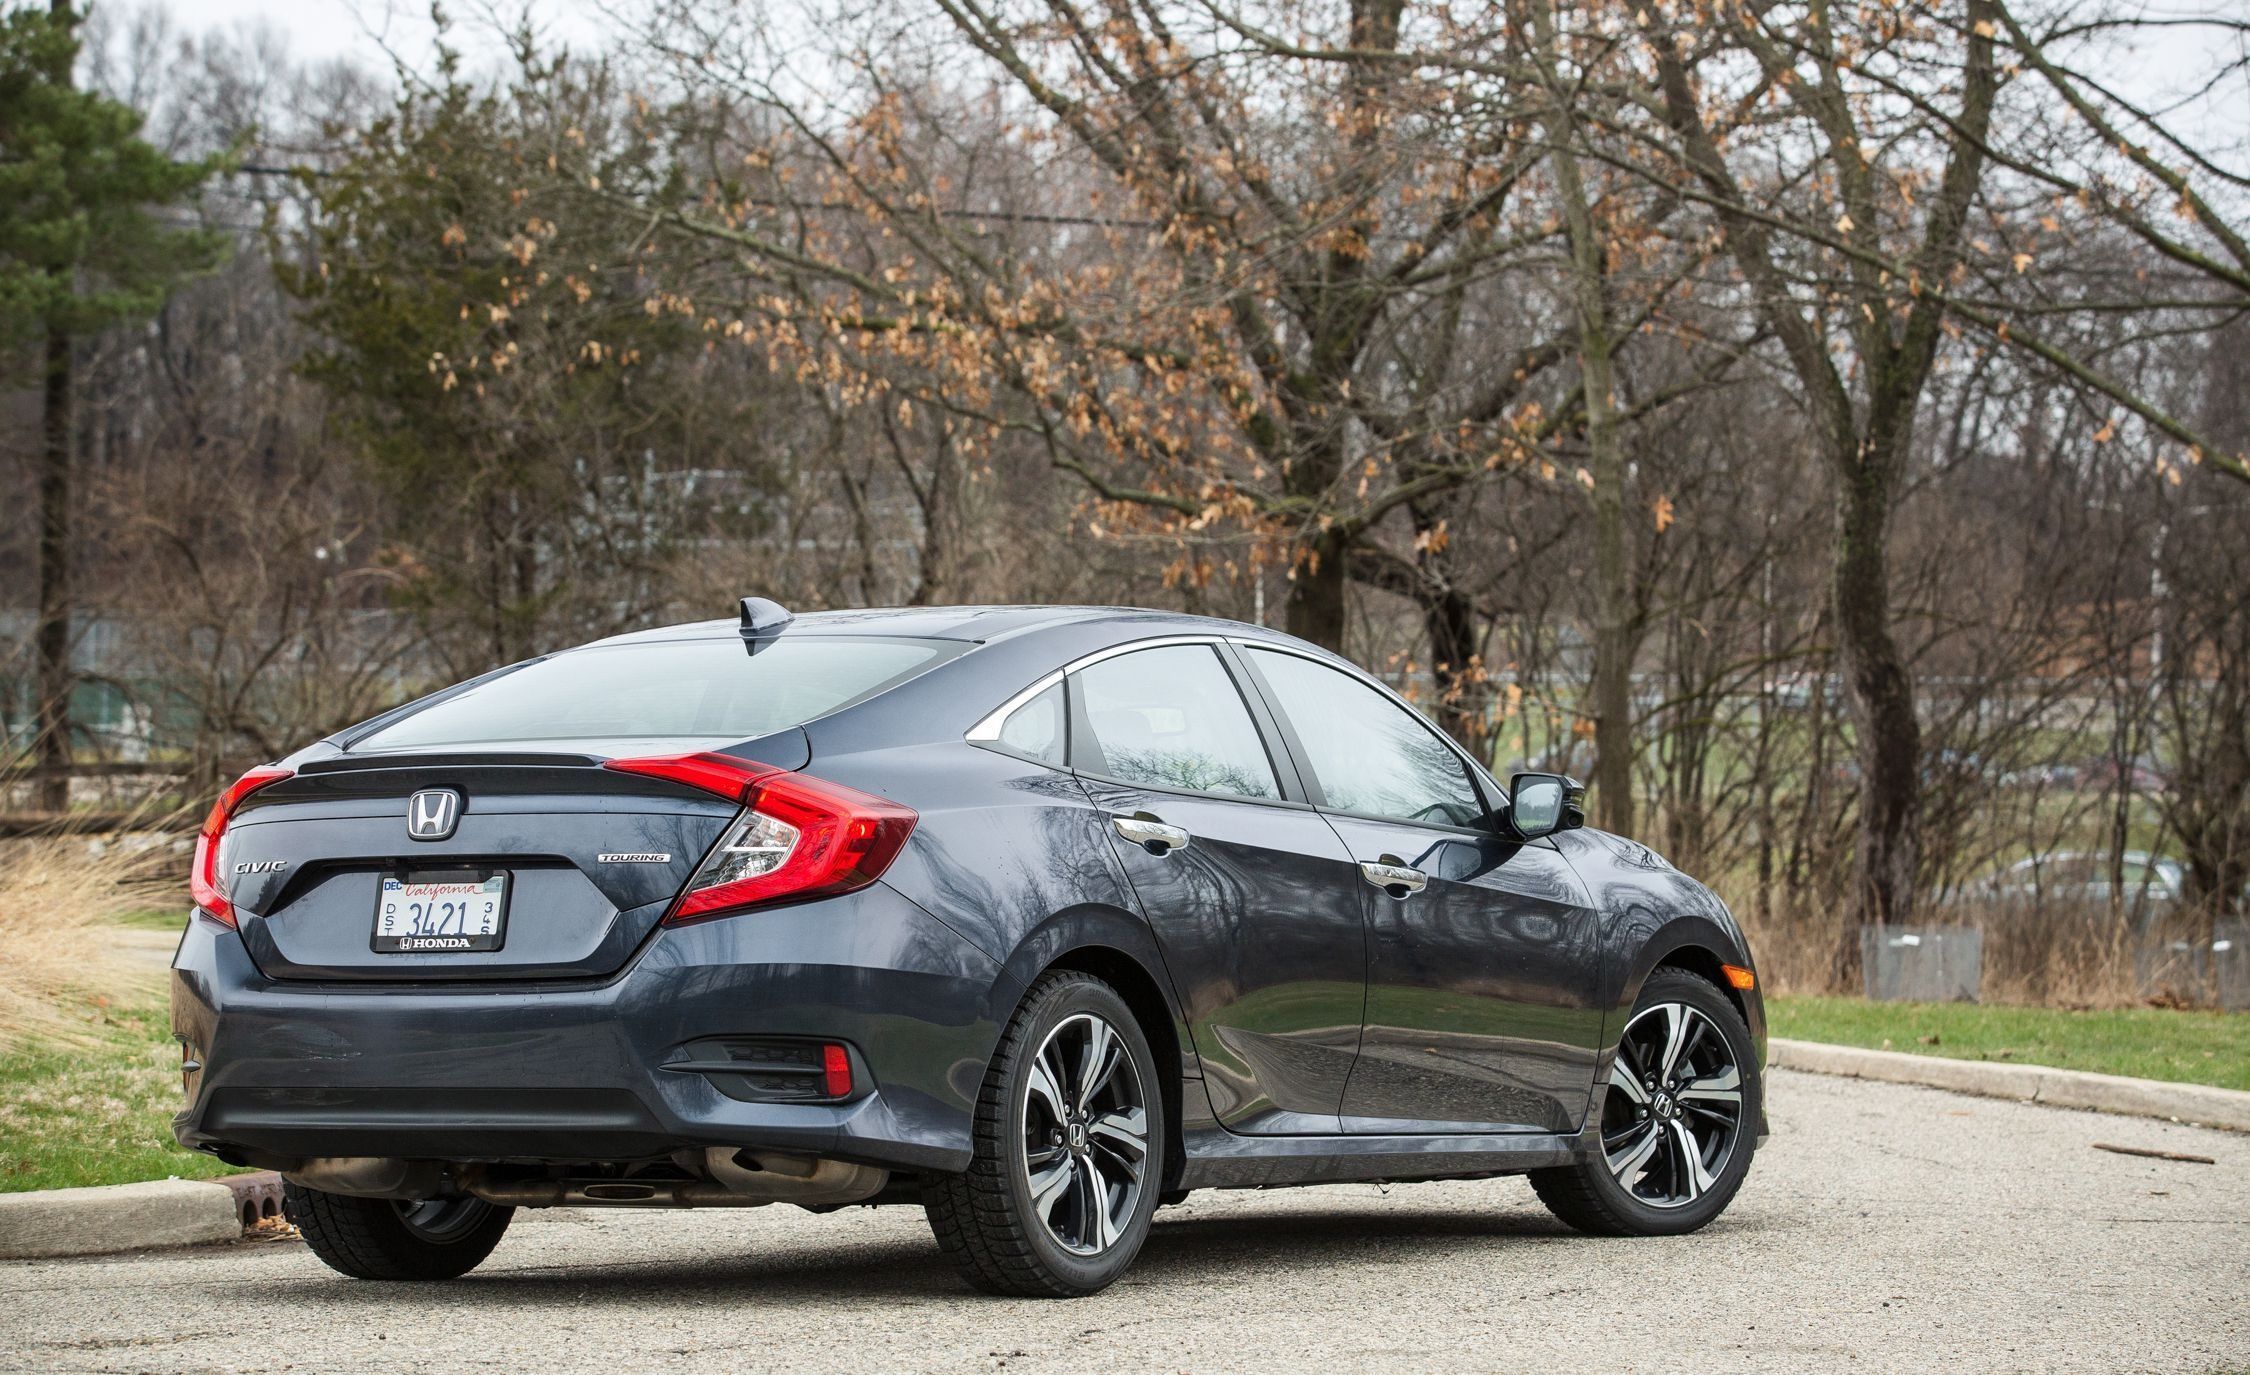 New 2018 Honda Civic Hondalink Infotainment Review Car And On This Month